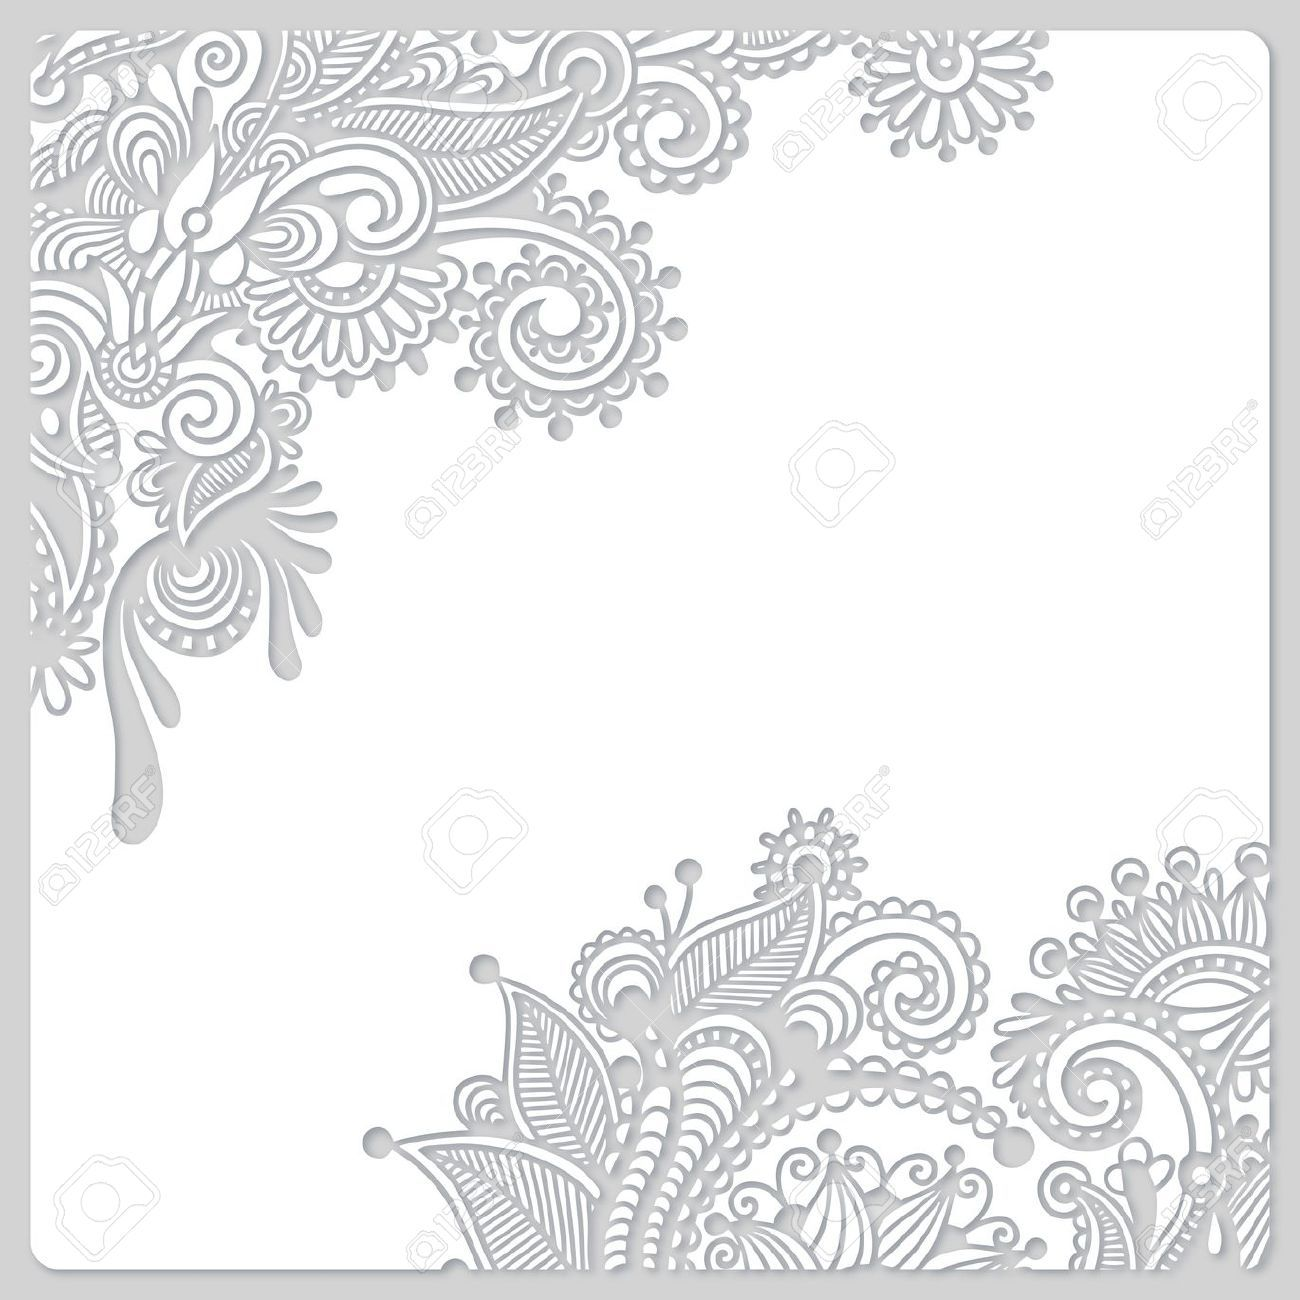 18385288 Abstract Modern Floral White Paper Cut Design